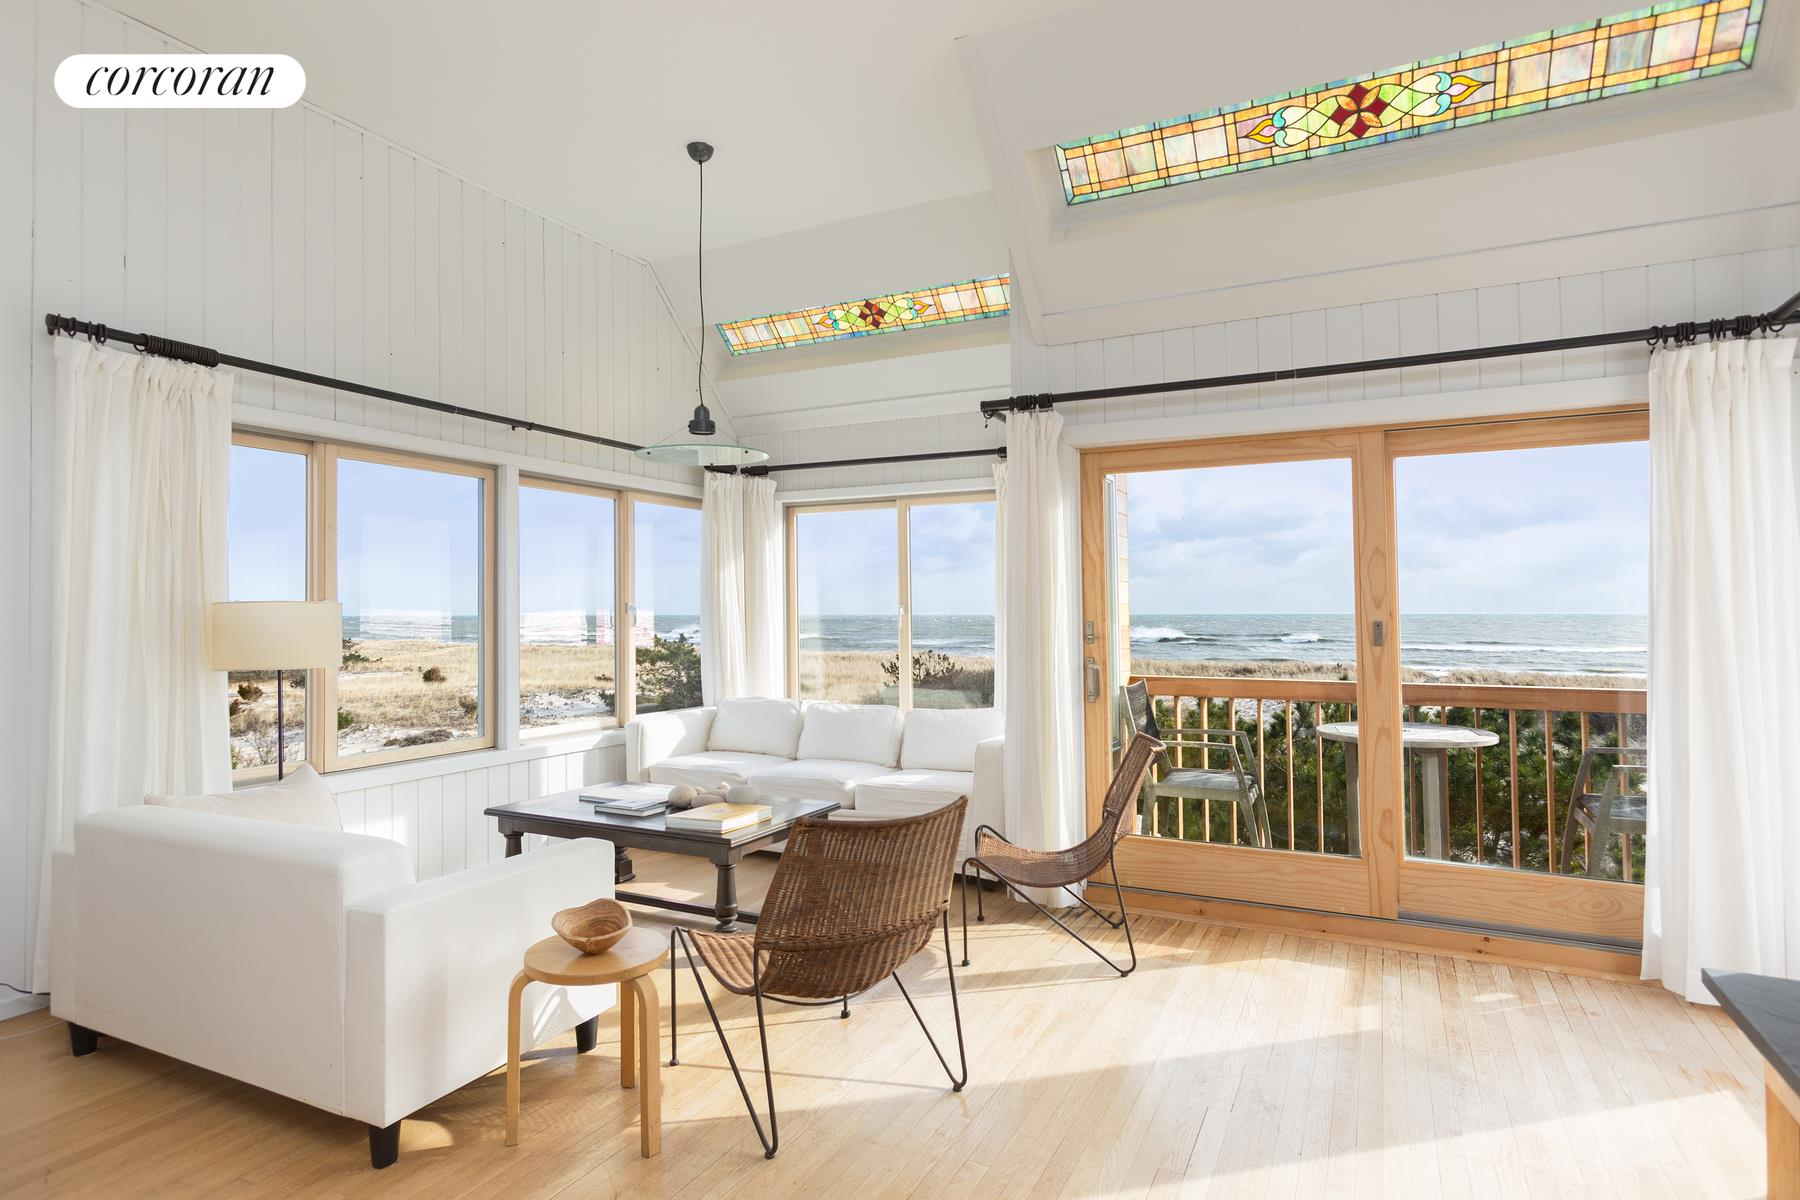 449 Dune Rd, Great room with ocean views